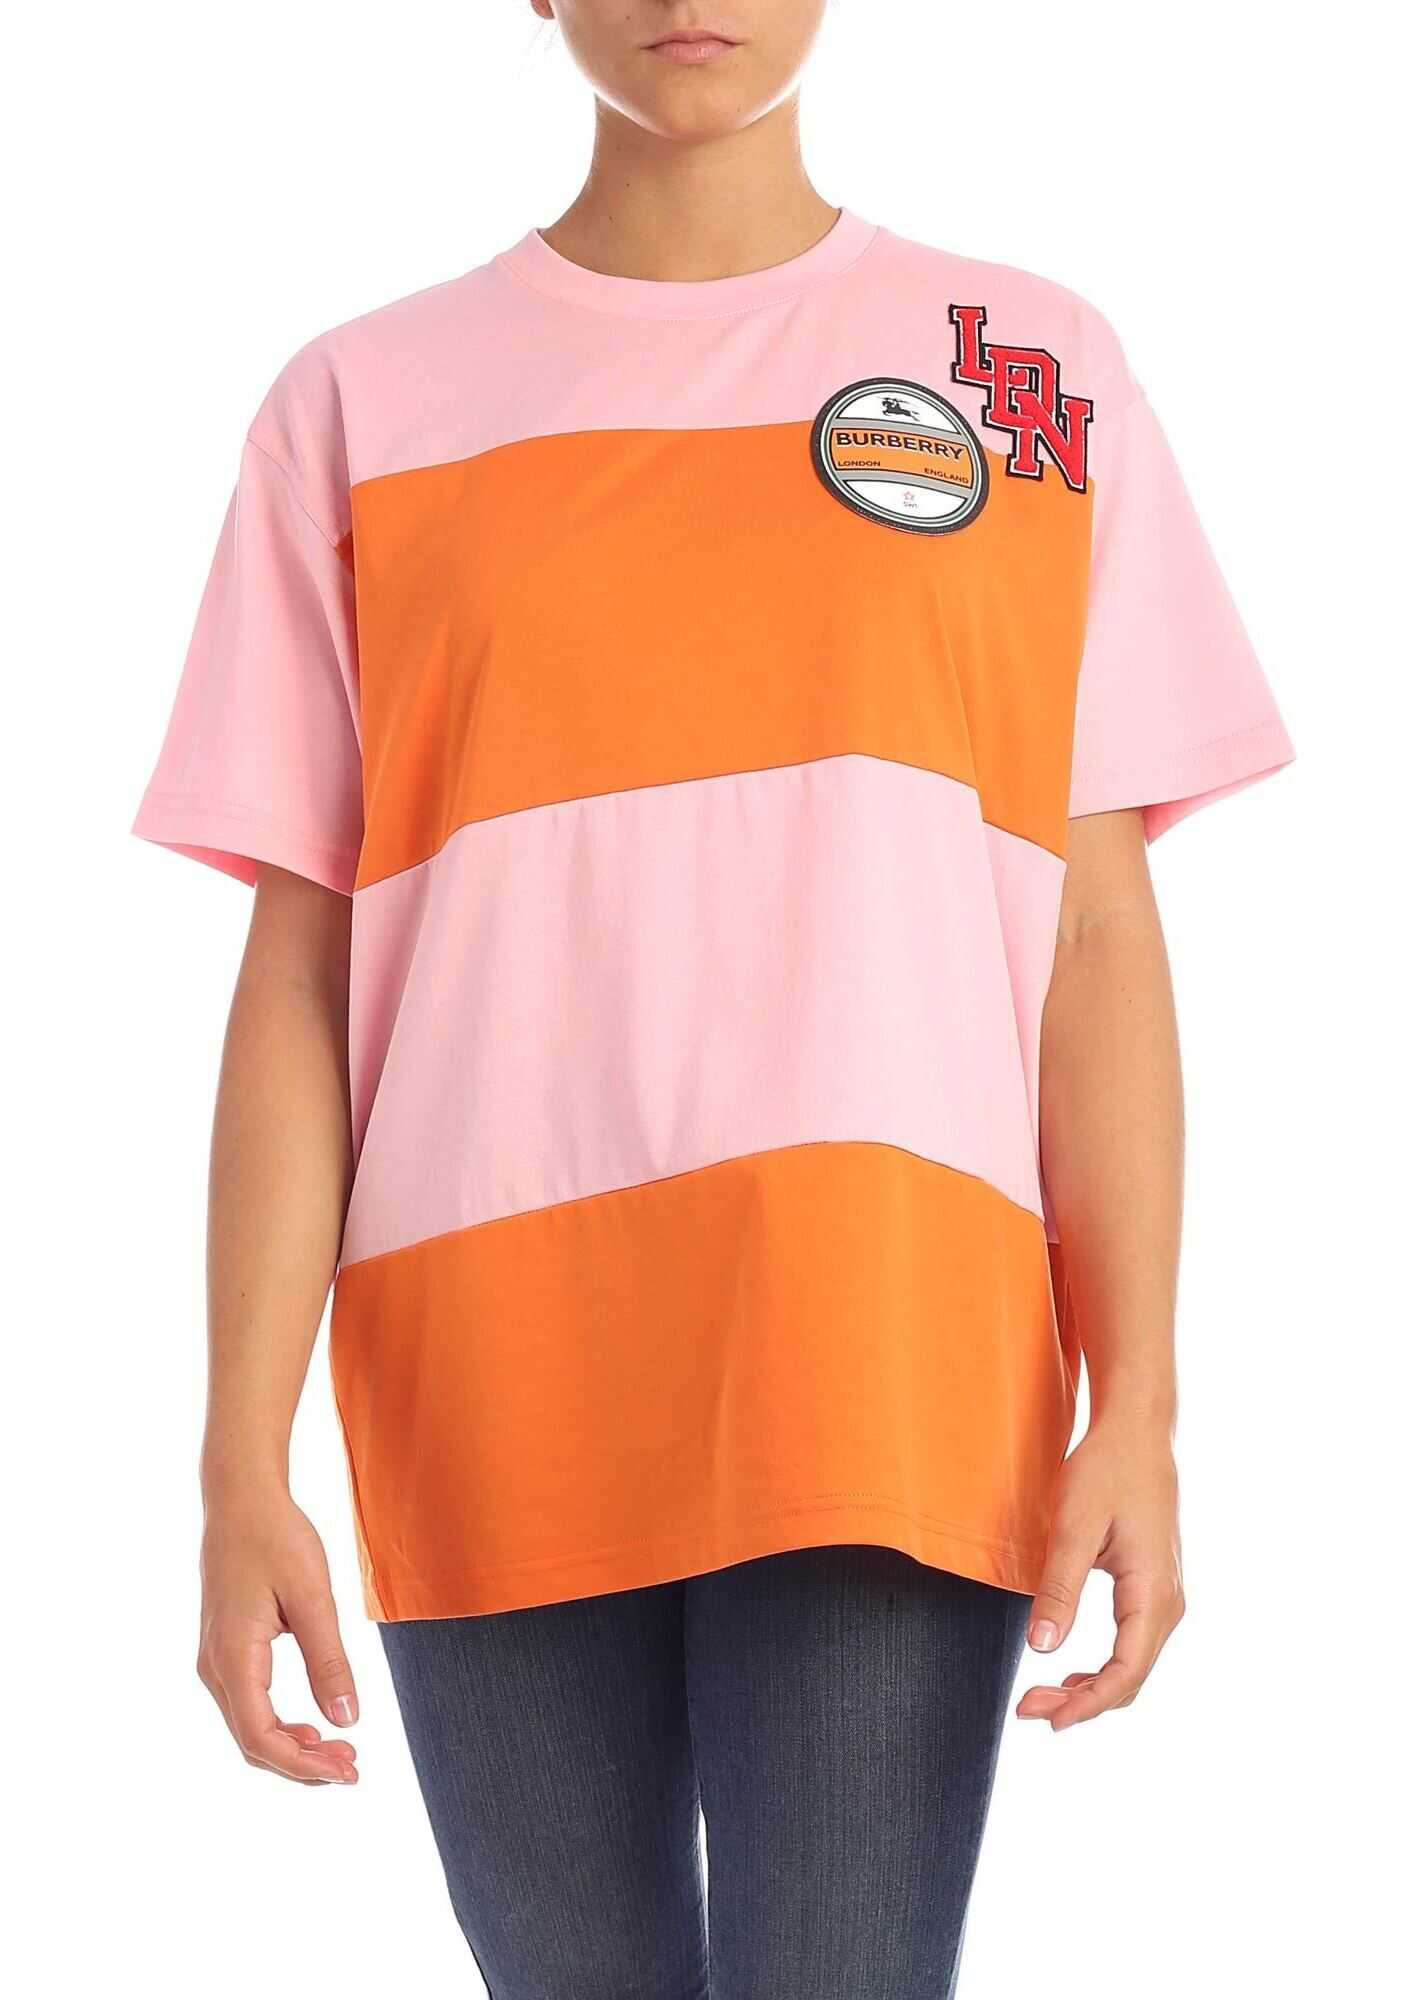 Burberry Carrick T-Shirt In Pink And Orange Pink